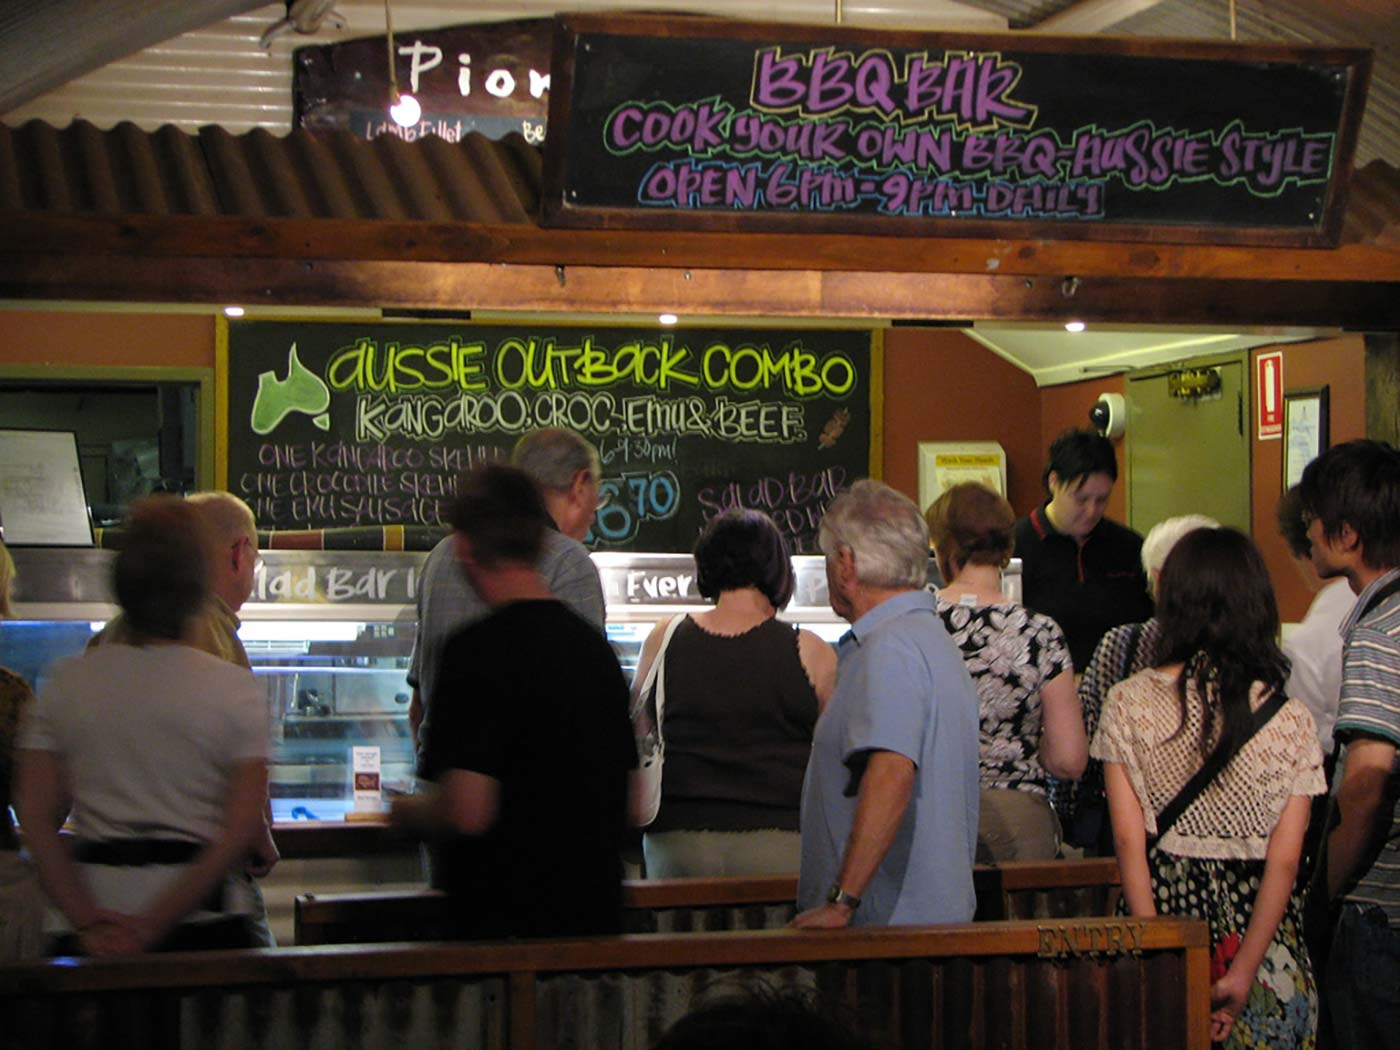 Photo of tourists queuing to order dinner at Yulara village, November 2007 - click to view larger image